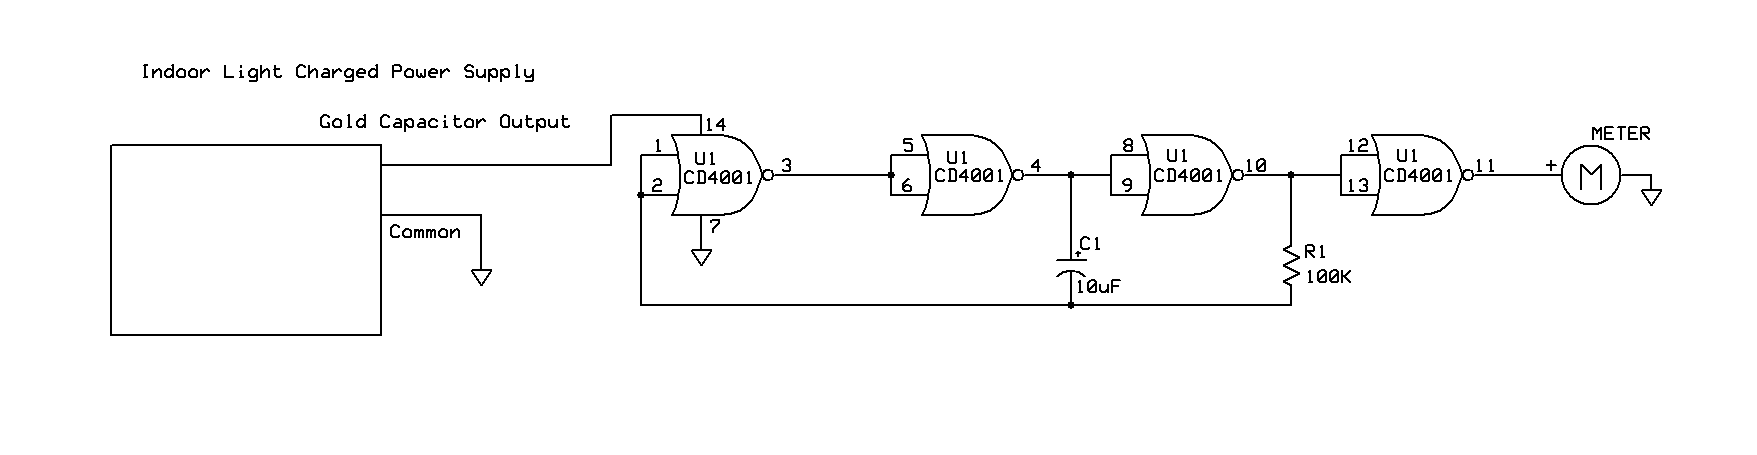 Powering A Project Details Circuit Diagram For Nor Gate Cmos Chips Are Ideal Candidates Energy Harvesting Projects Due To Their Low Power Requirements After Wiring The Above Schematic On Solderless